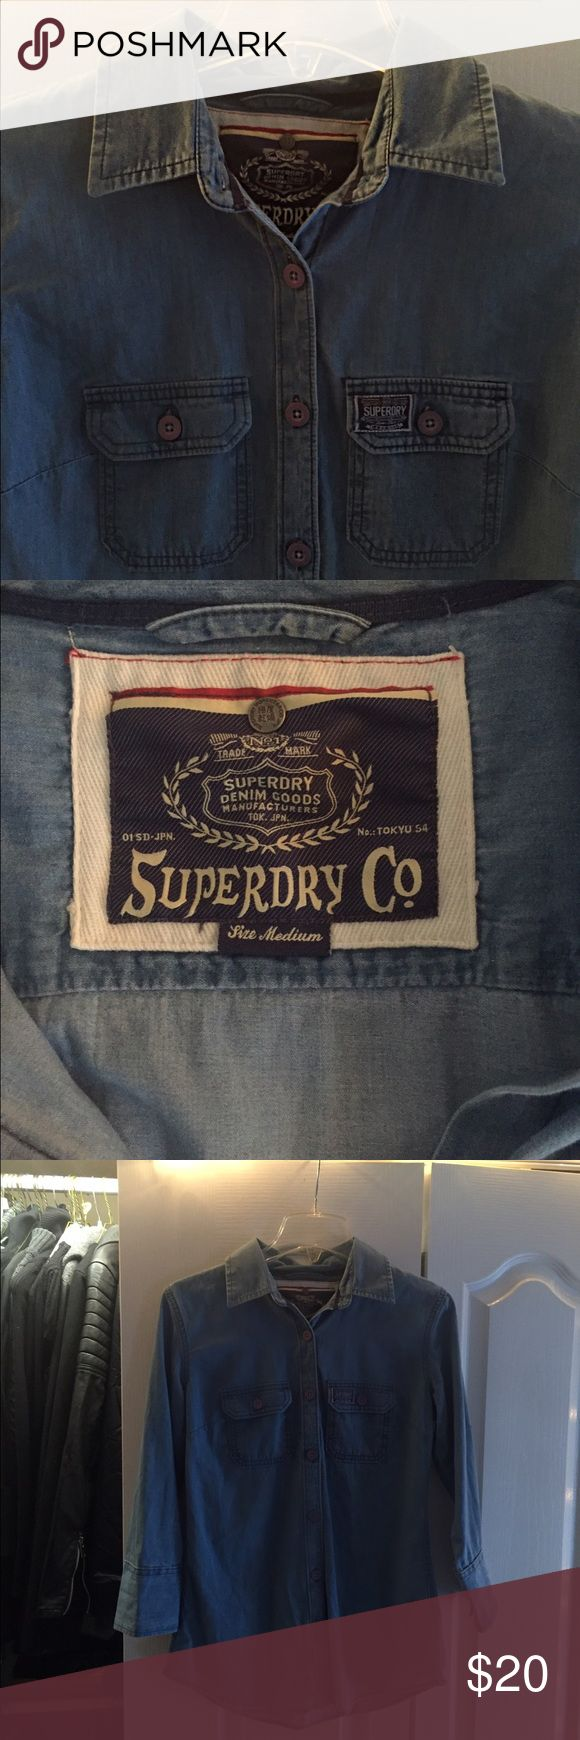 Superdry Oversized Denim Shirt Sky Slub Blue, Great Condition, Superdry United Kingdom, Button Down middle and sleeves Superdry Tops Button Down Shirts